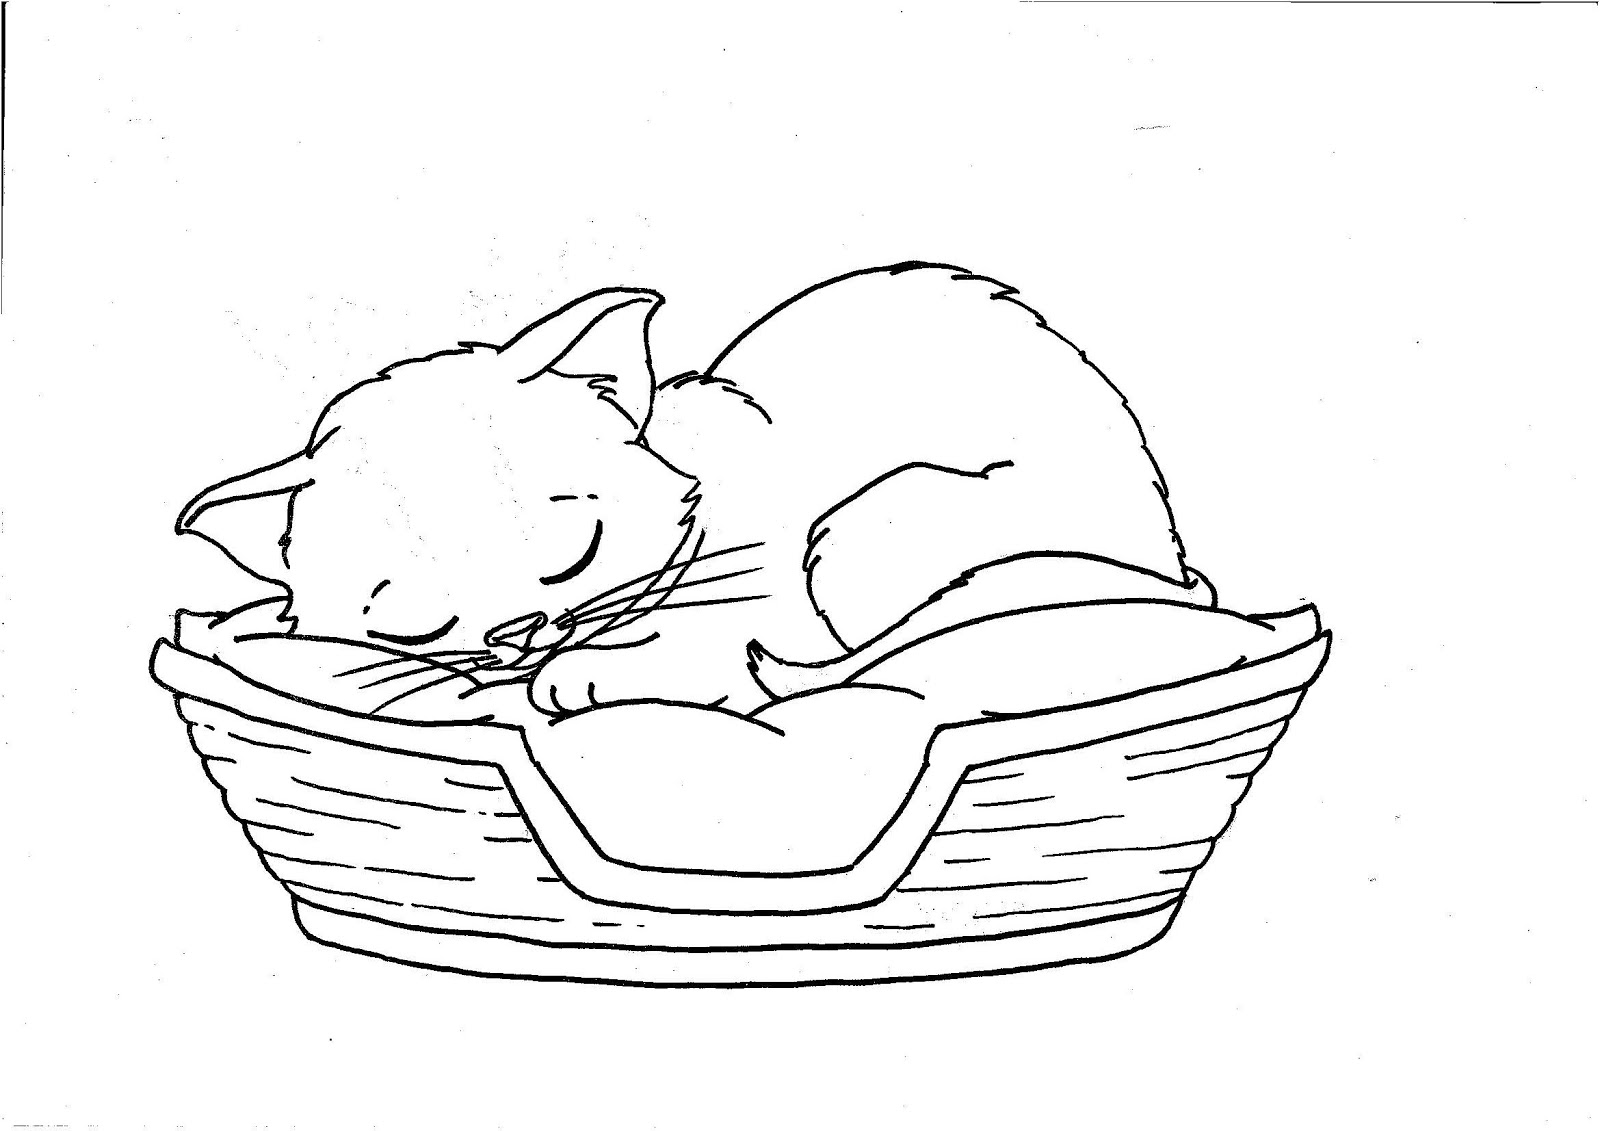 Coloring pages cats and kittens ~ RadArt: Cats Rule Coloring Sheets